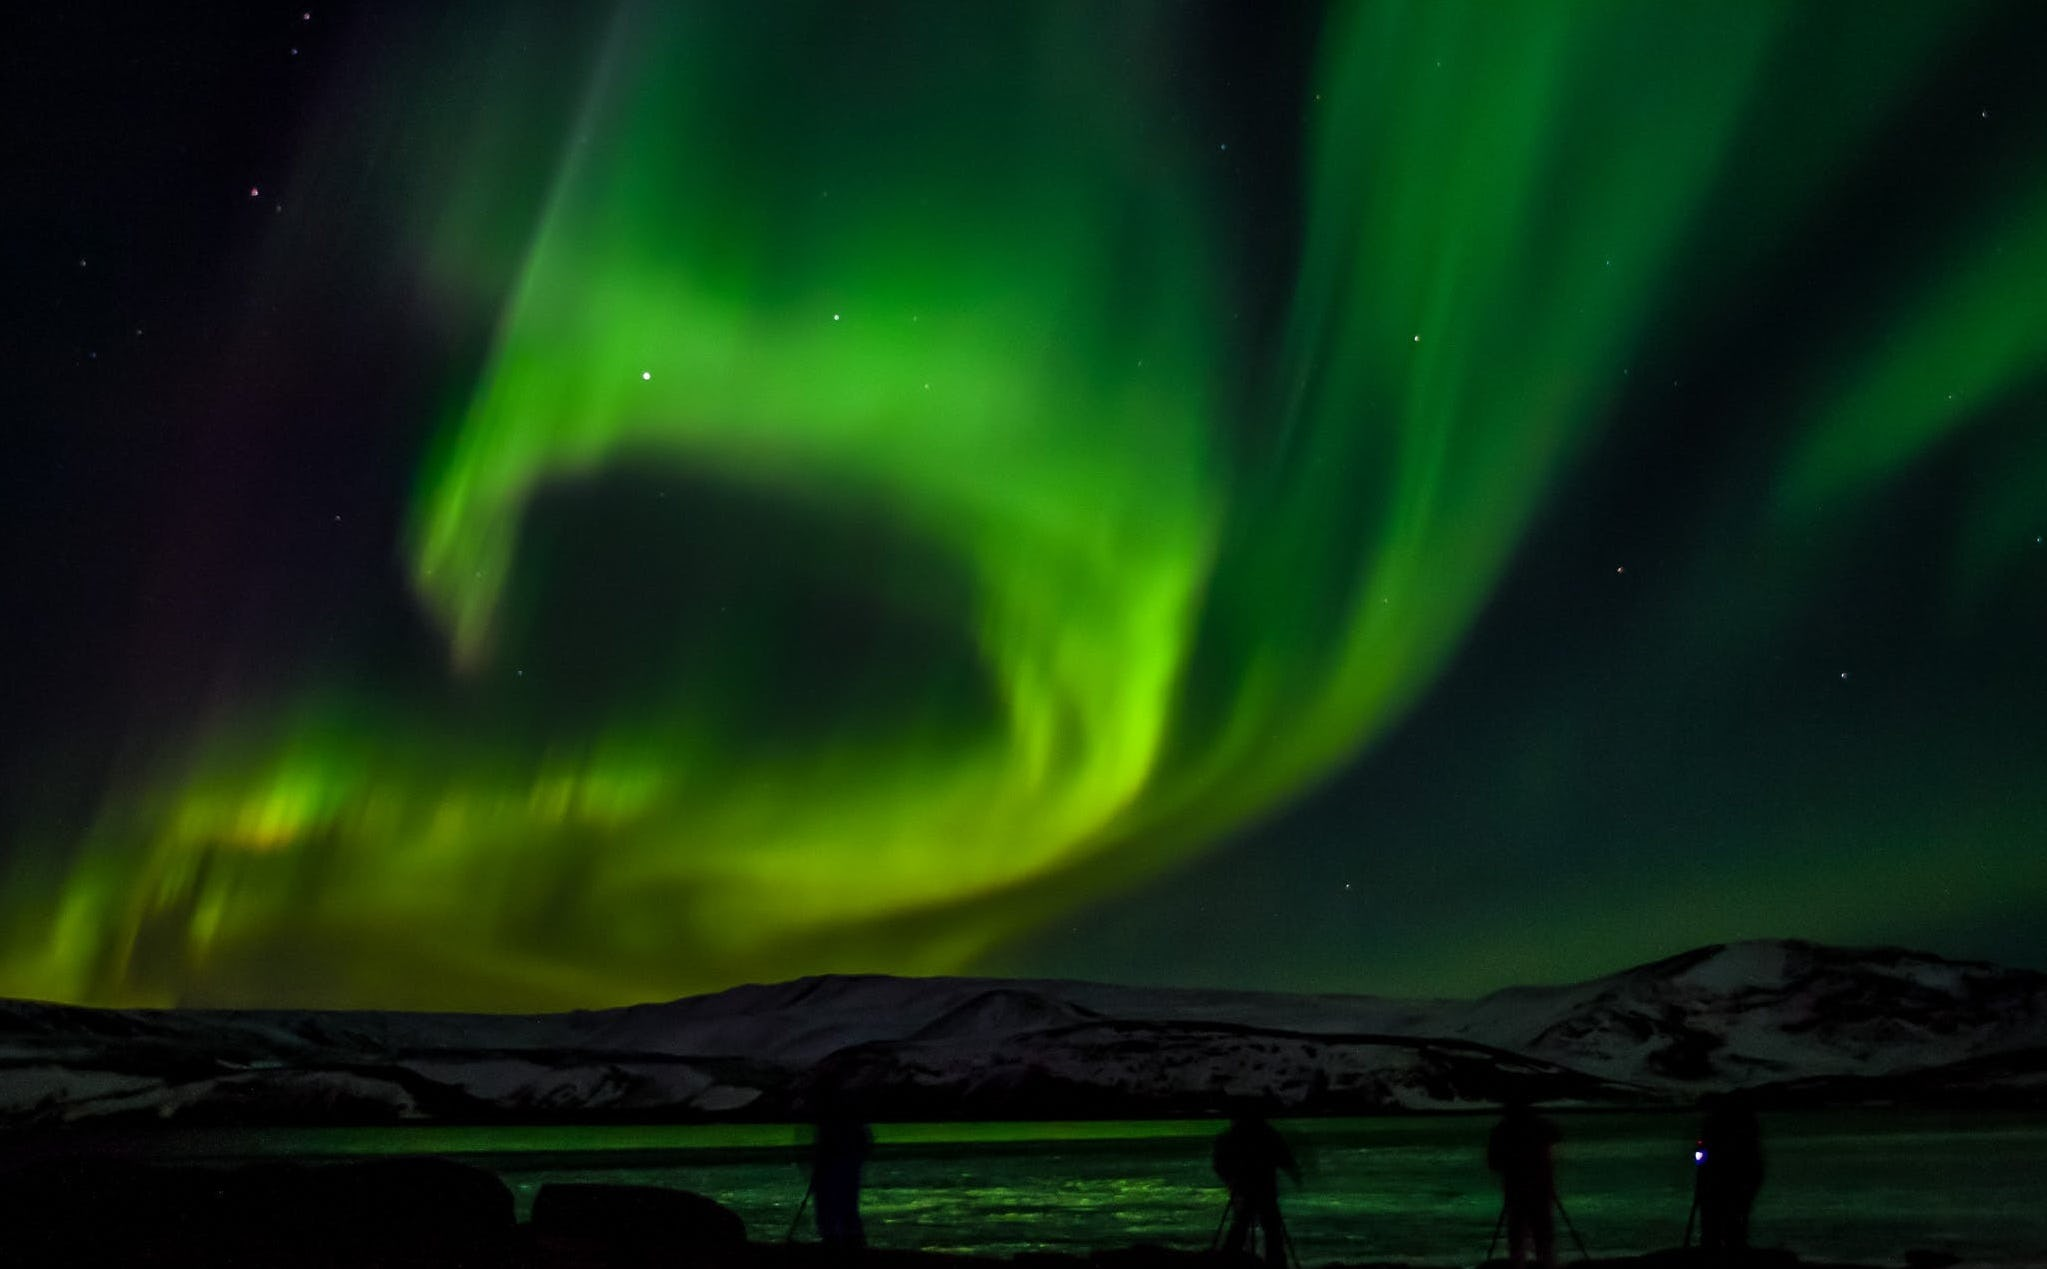 The Northern Lights Minibus Tour takes you away from the lights of the cities and towns and into the perfect, dark environment where the Northern Lights shine at the brightest.